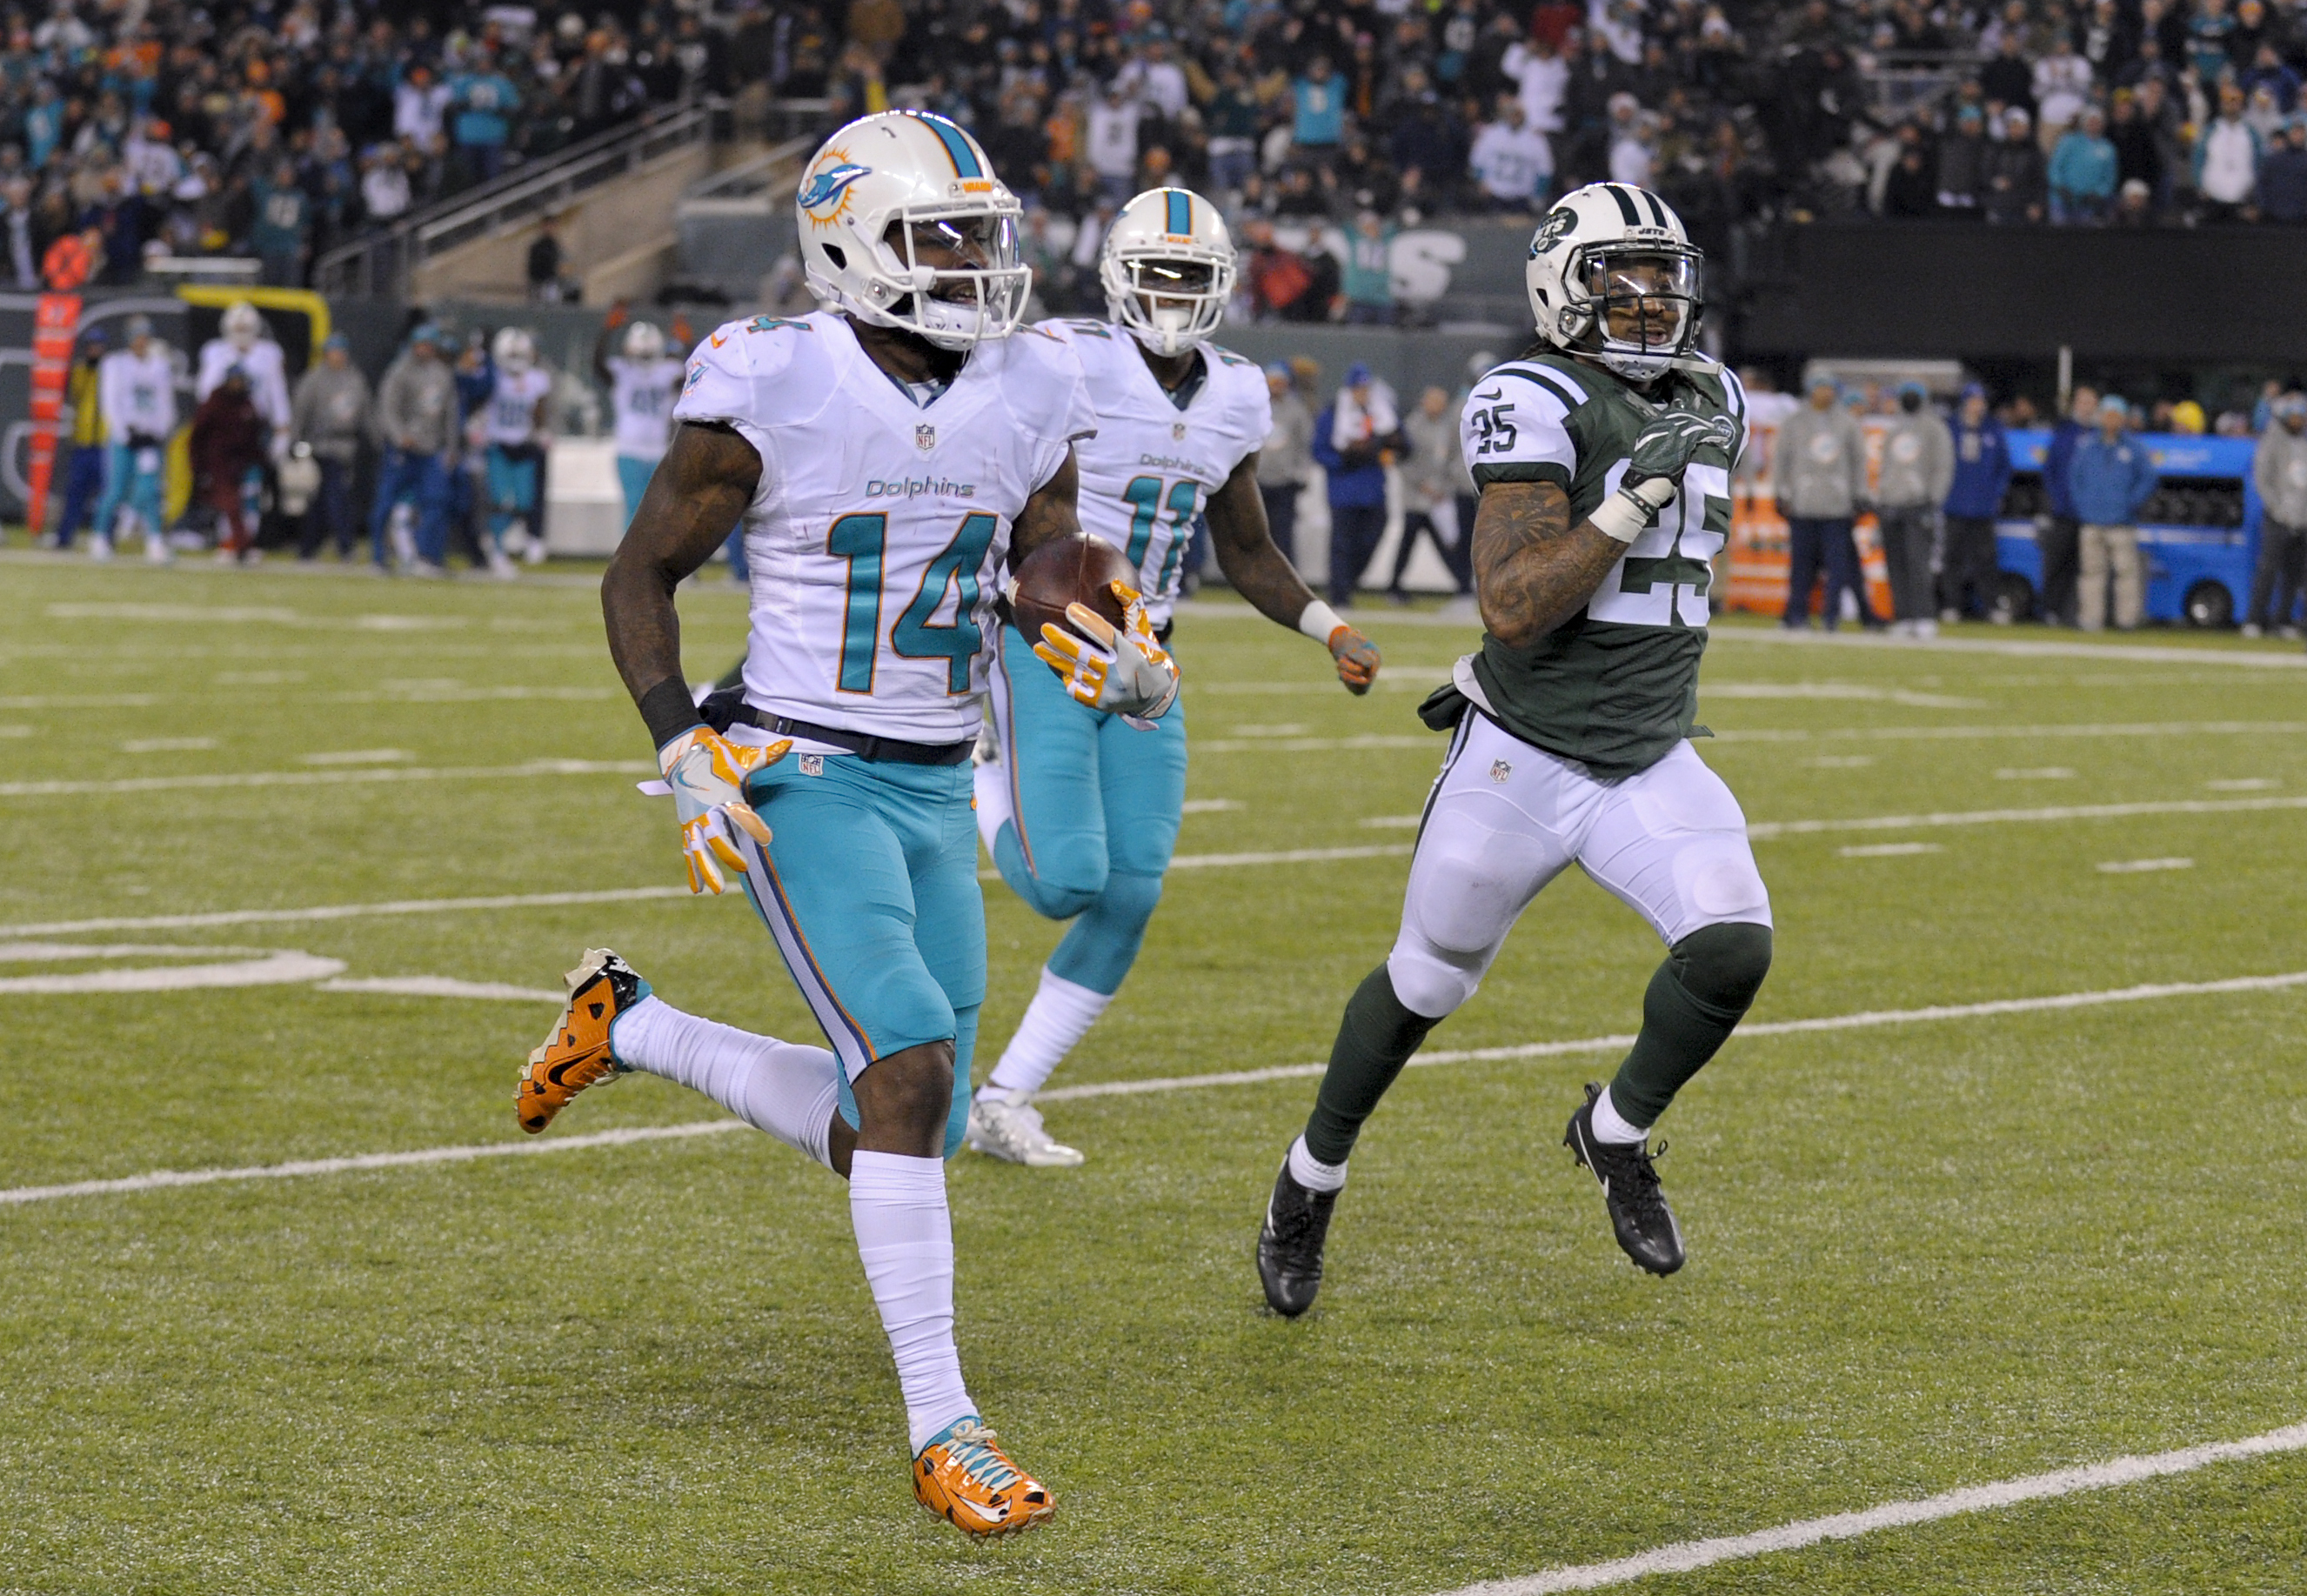 FILE - In this Dec. 17, 2016, file photo, Miami Dolphins wide receiver Jarvis Landry (14) runs for a touchdown against the New York Jets during an NFL football game in East Rutherford, N.J. Landry prepares to play Saturday, Dec. 24, against the Buffalo Bi